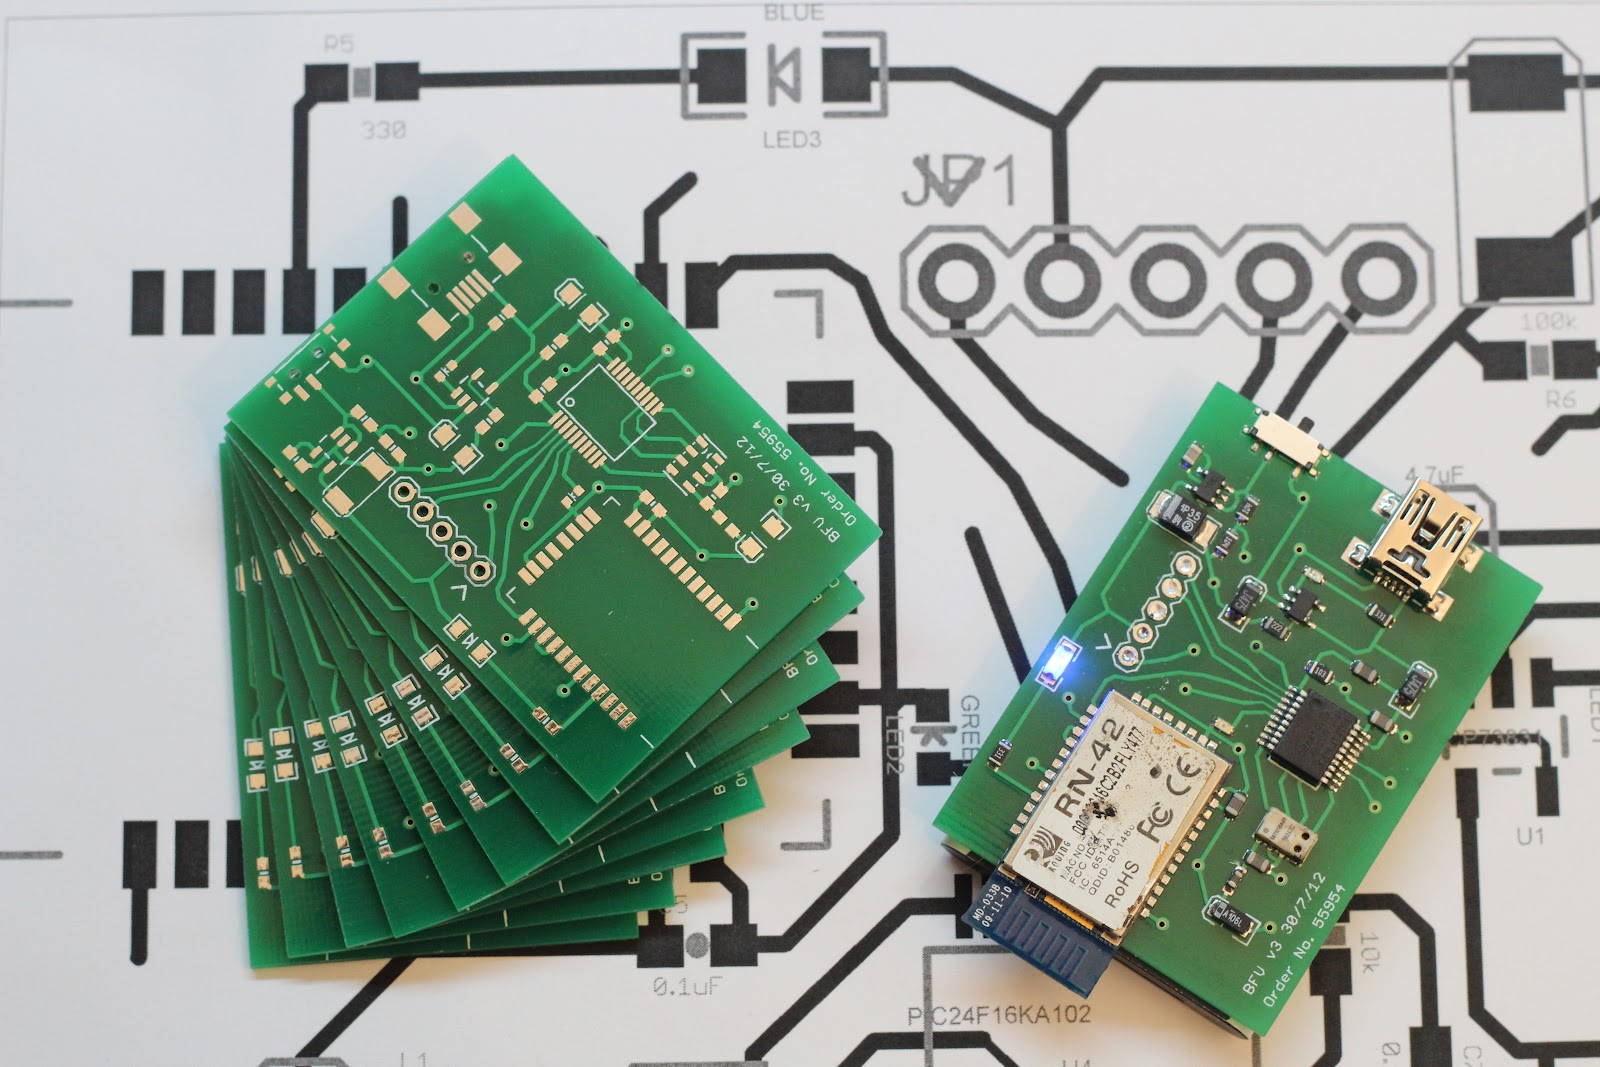 Blue Fly Vario Development Circuit Boards Have Arrived Solder For Putting Together The Prototype With My Soda Can Paste Stencil And Skillet Method Took About An Hour Rather Than Put In Right Angle Headers